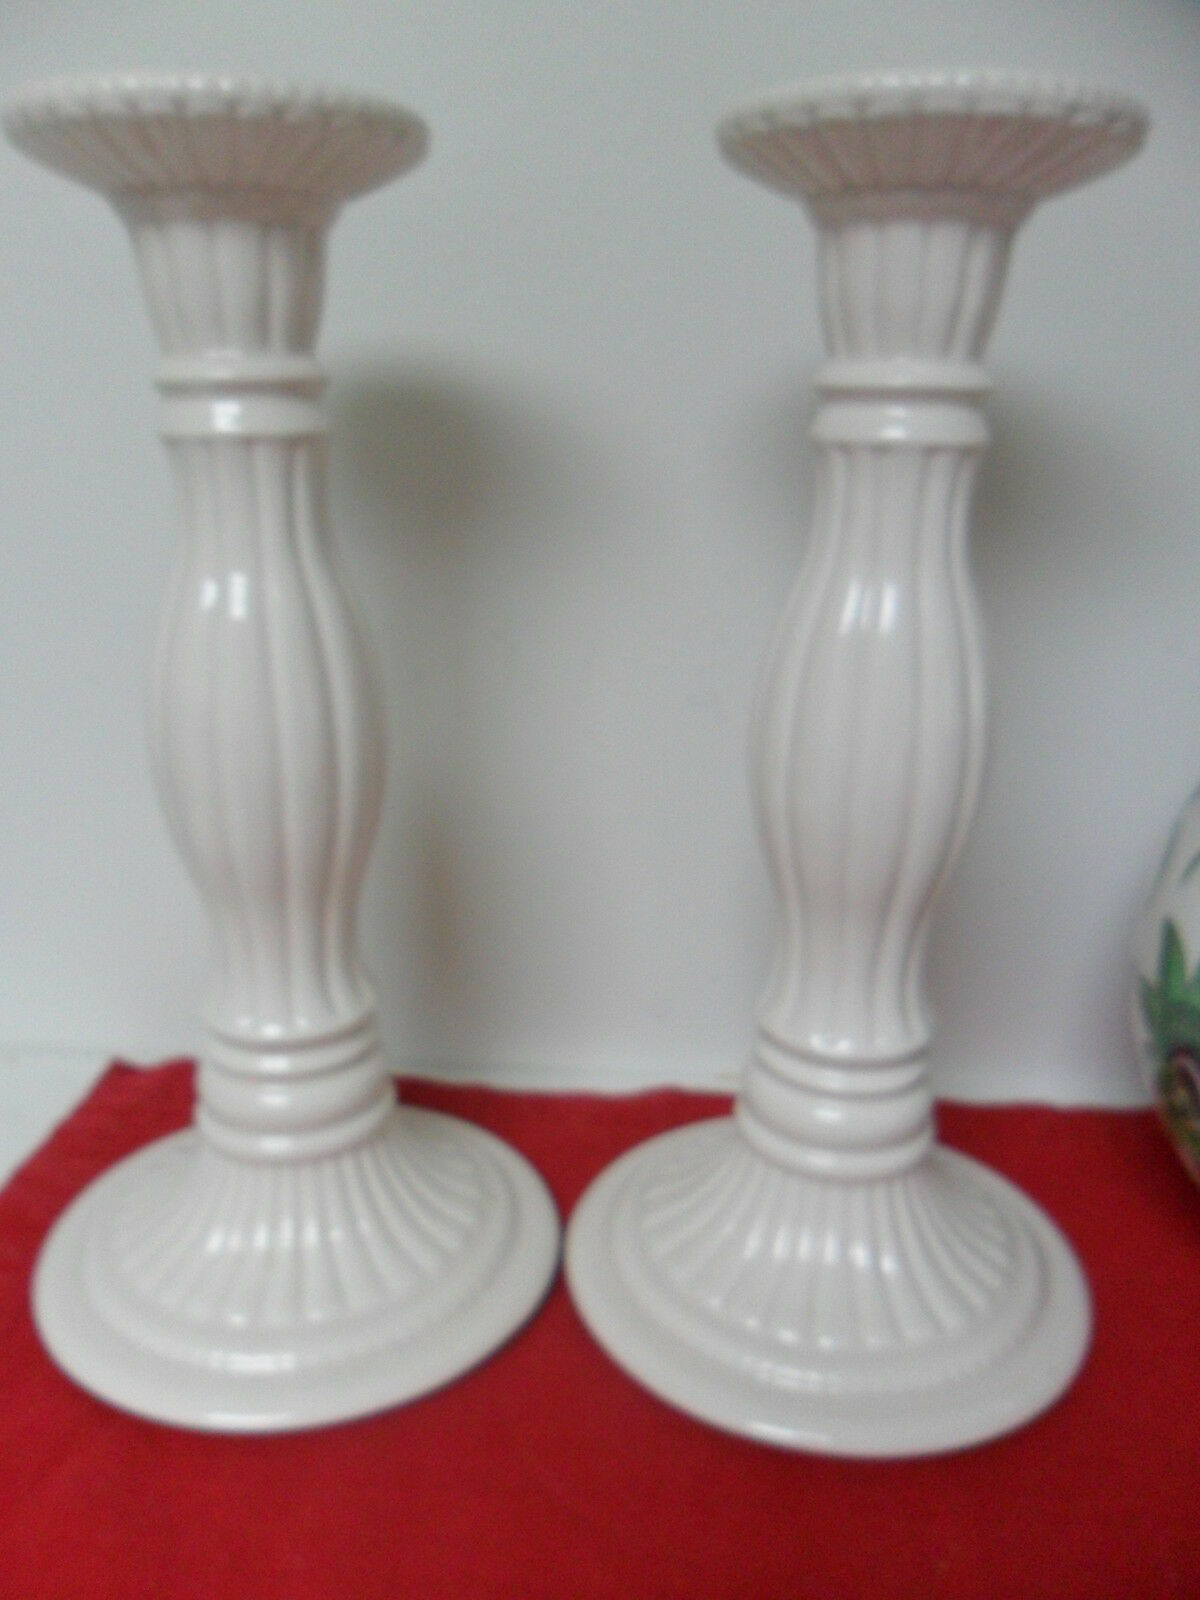 Villeroy and boch pair of large candle holders white molded 10 tall offictab